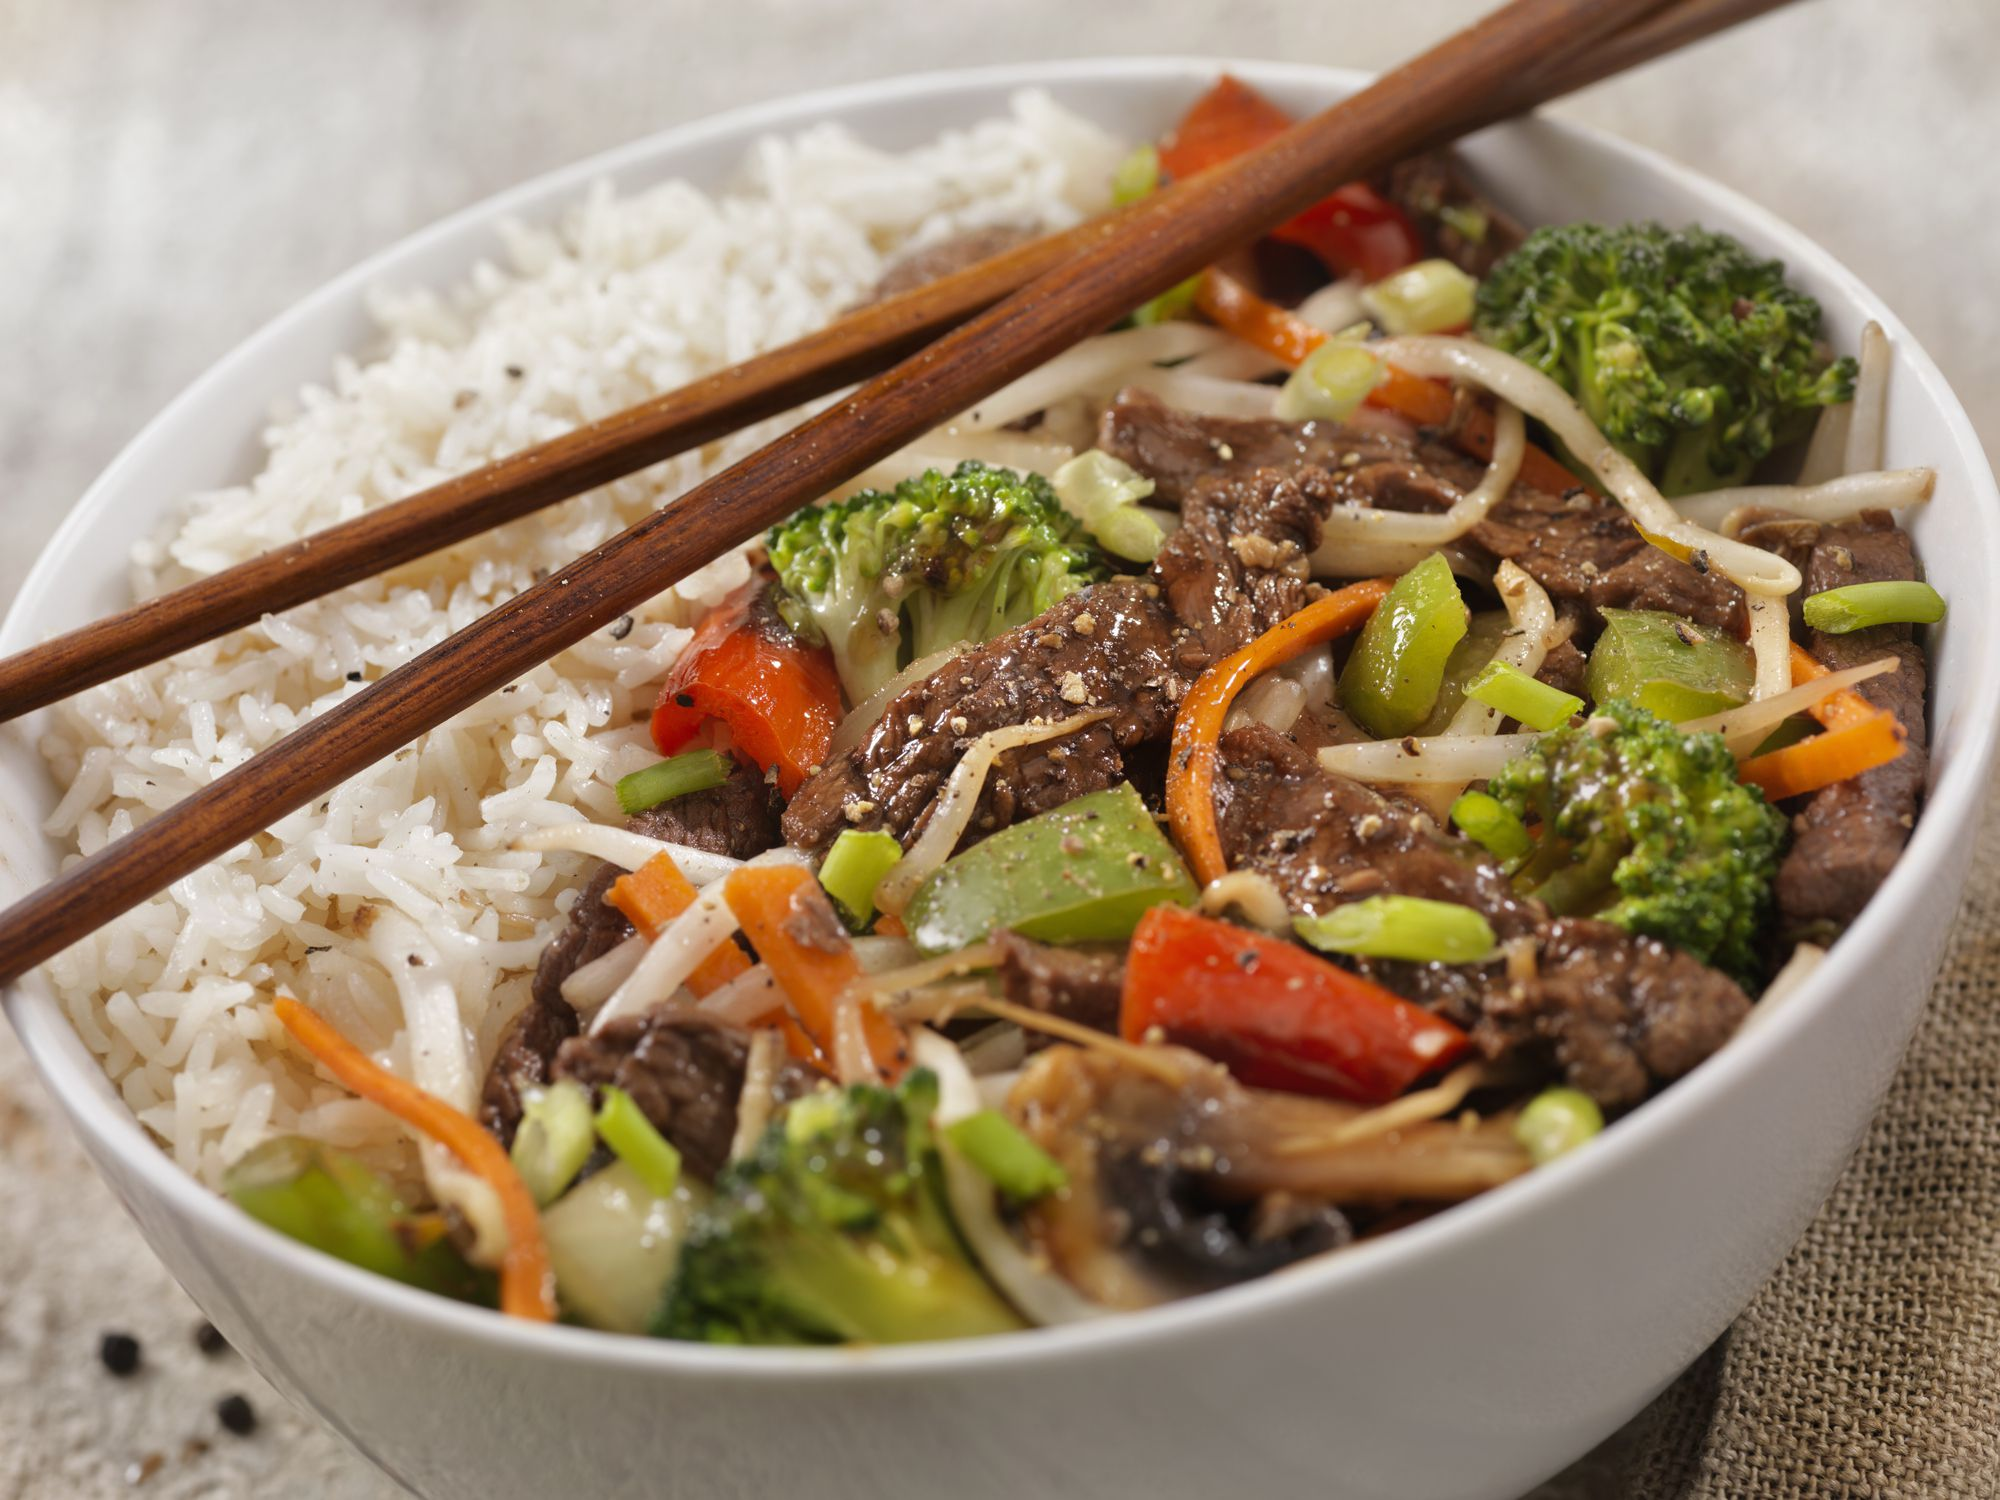 These Top 9 Beef Stir-Fry Recipes Are Better Than Takeout